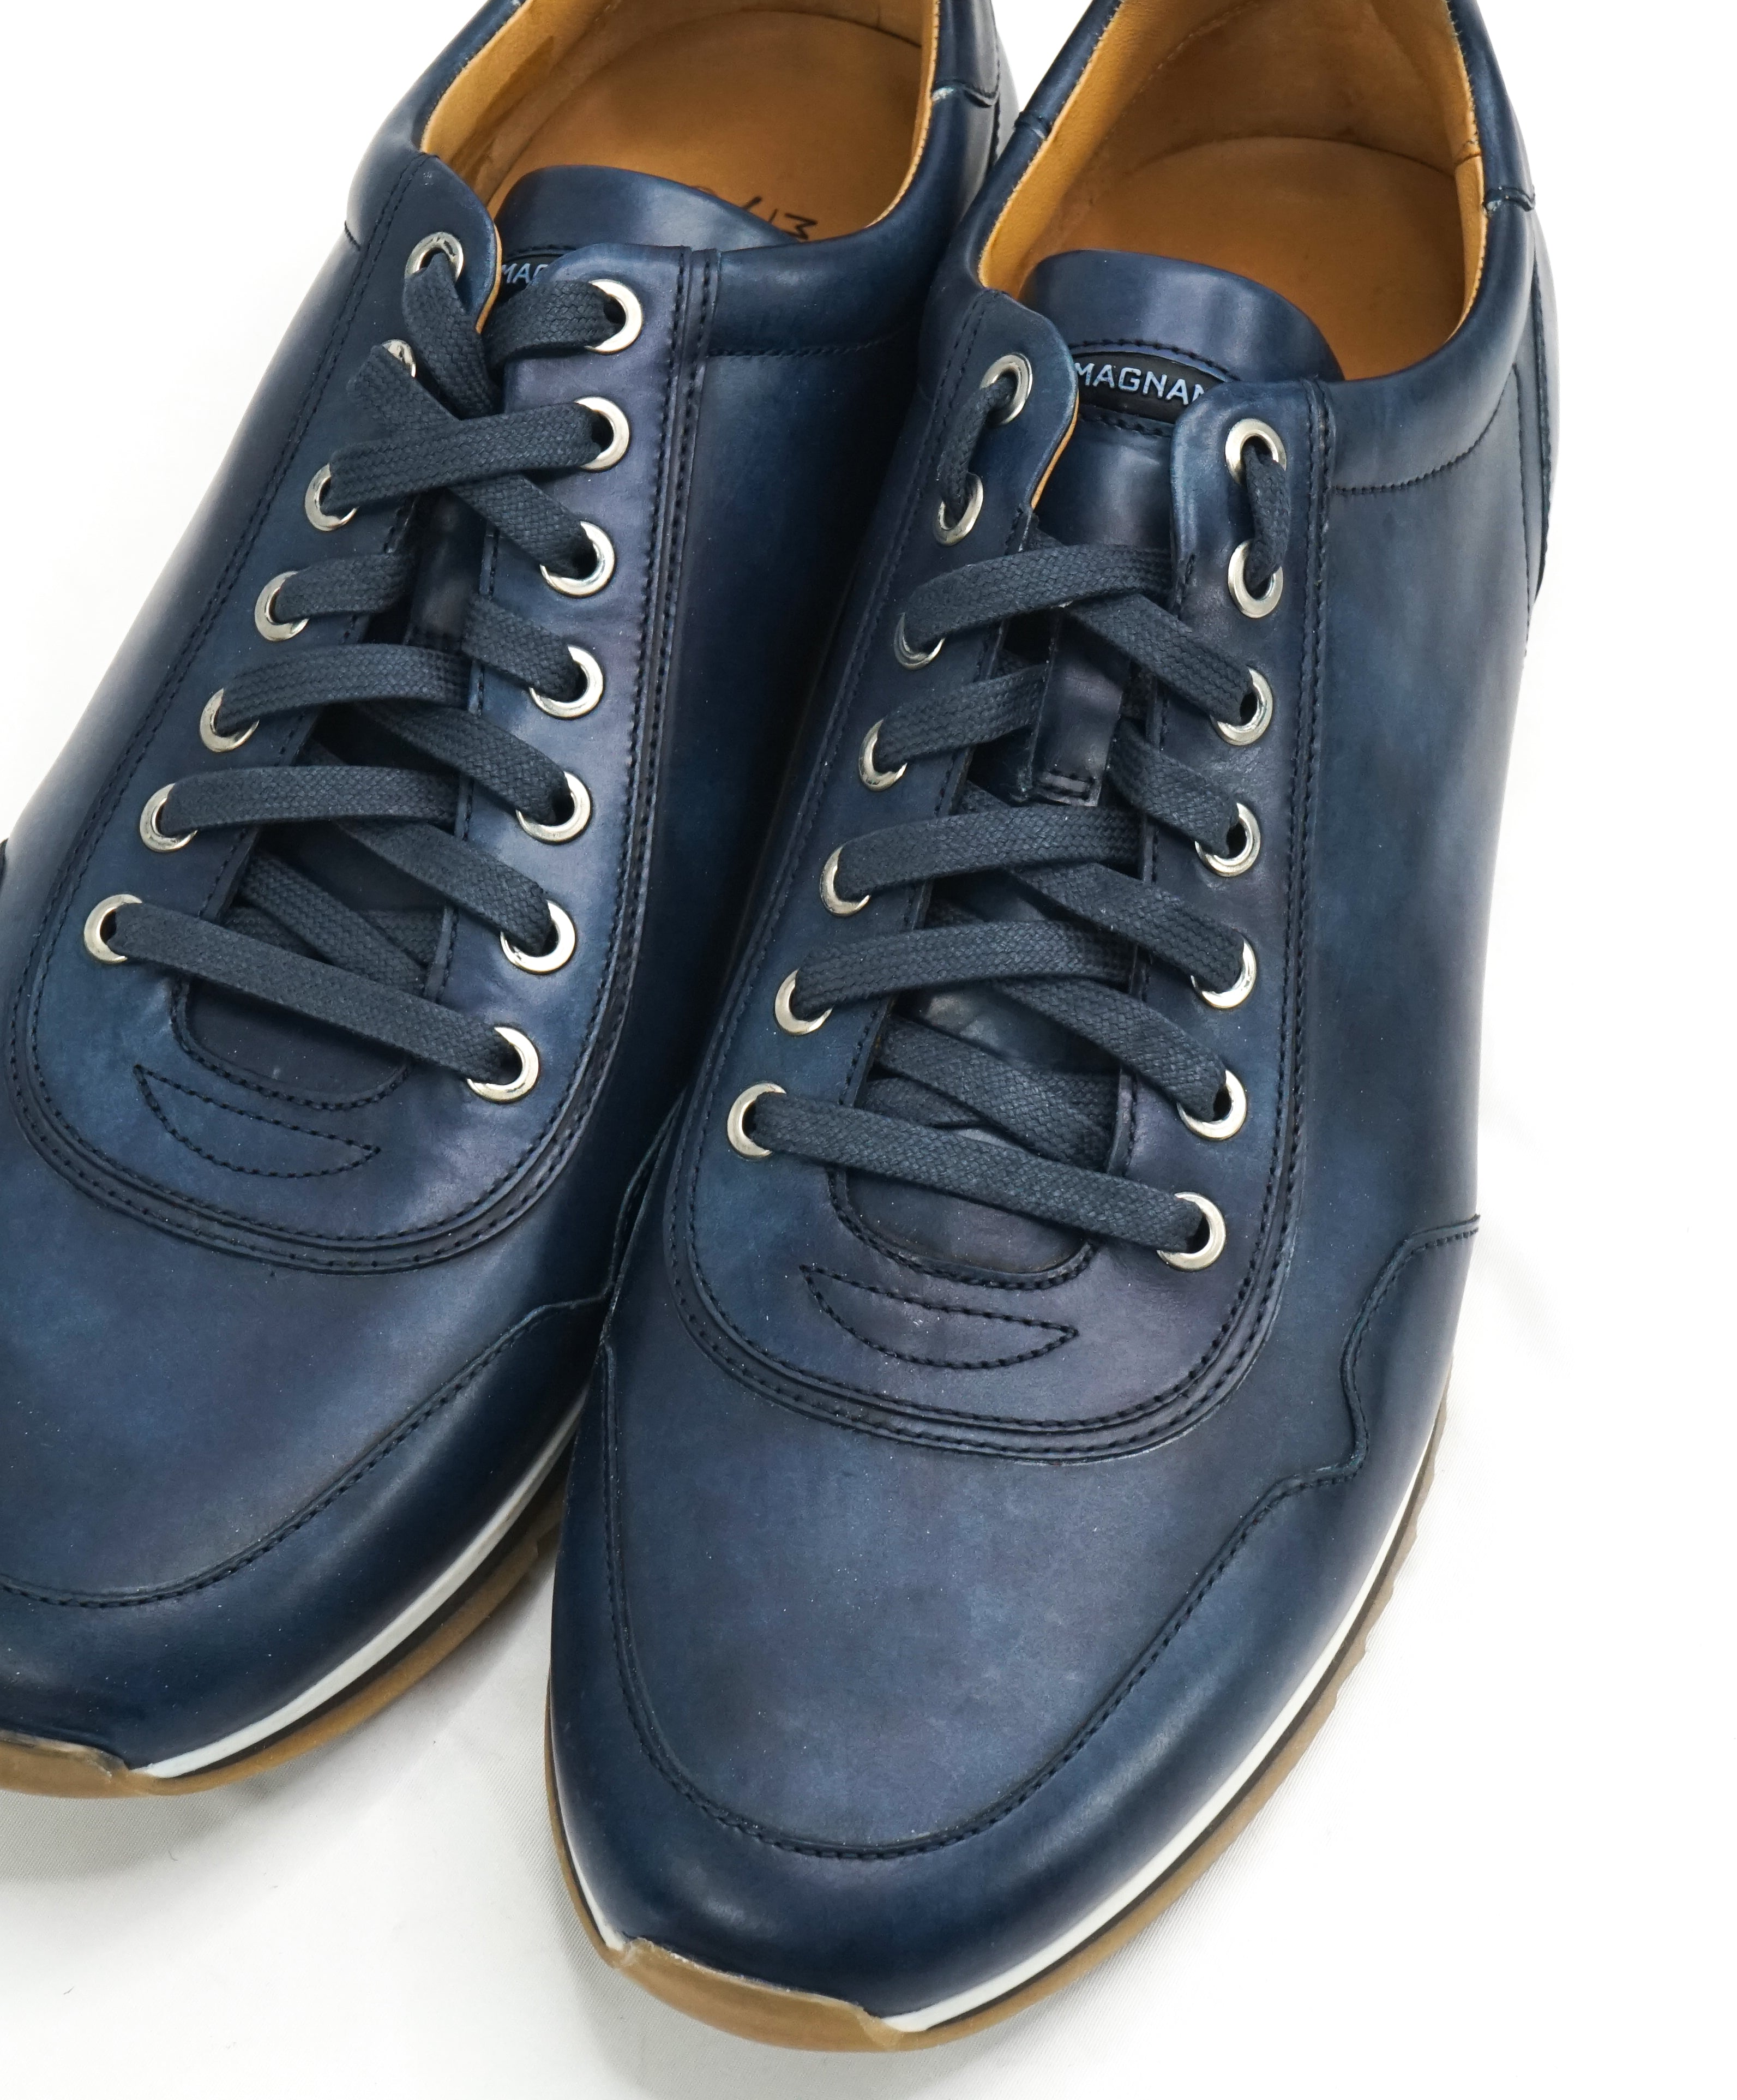 MAGNANNI - Lace Up Blue Patina Leather Sneakers W Rubber Sole - 11